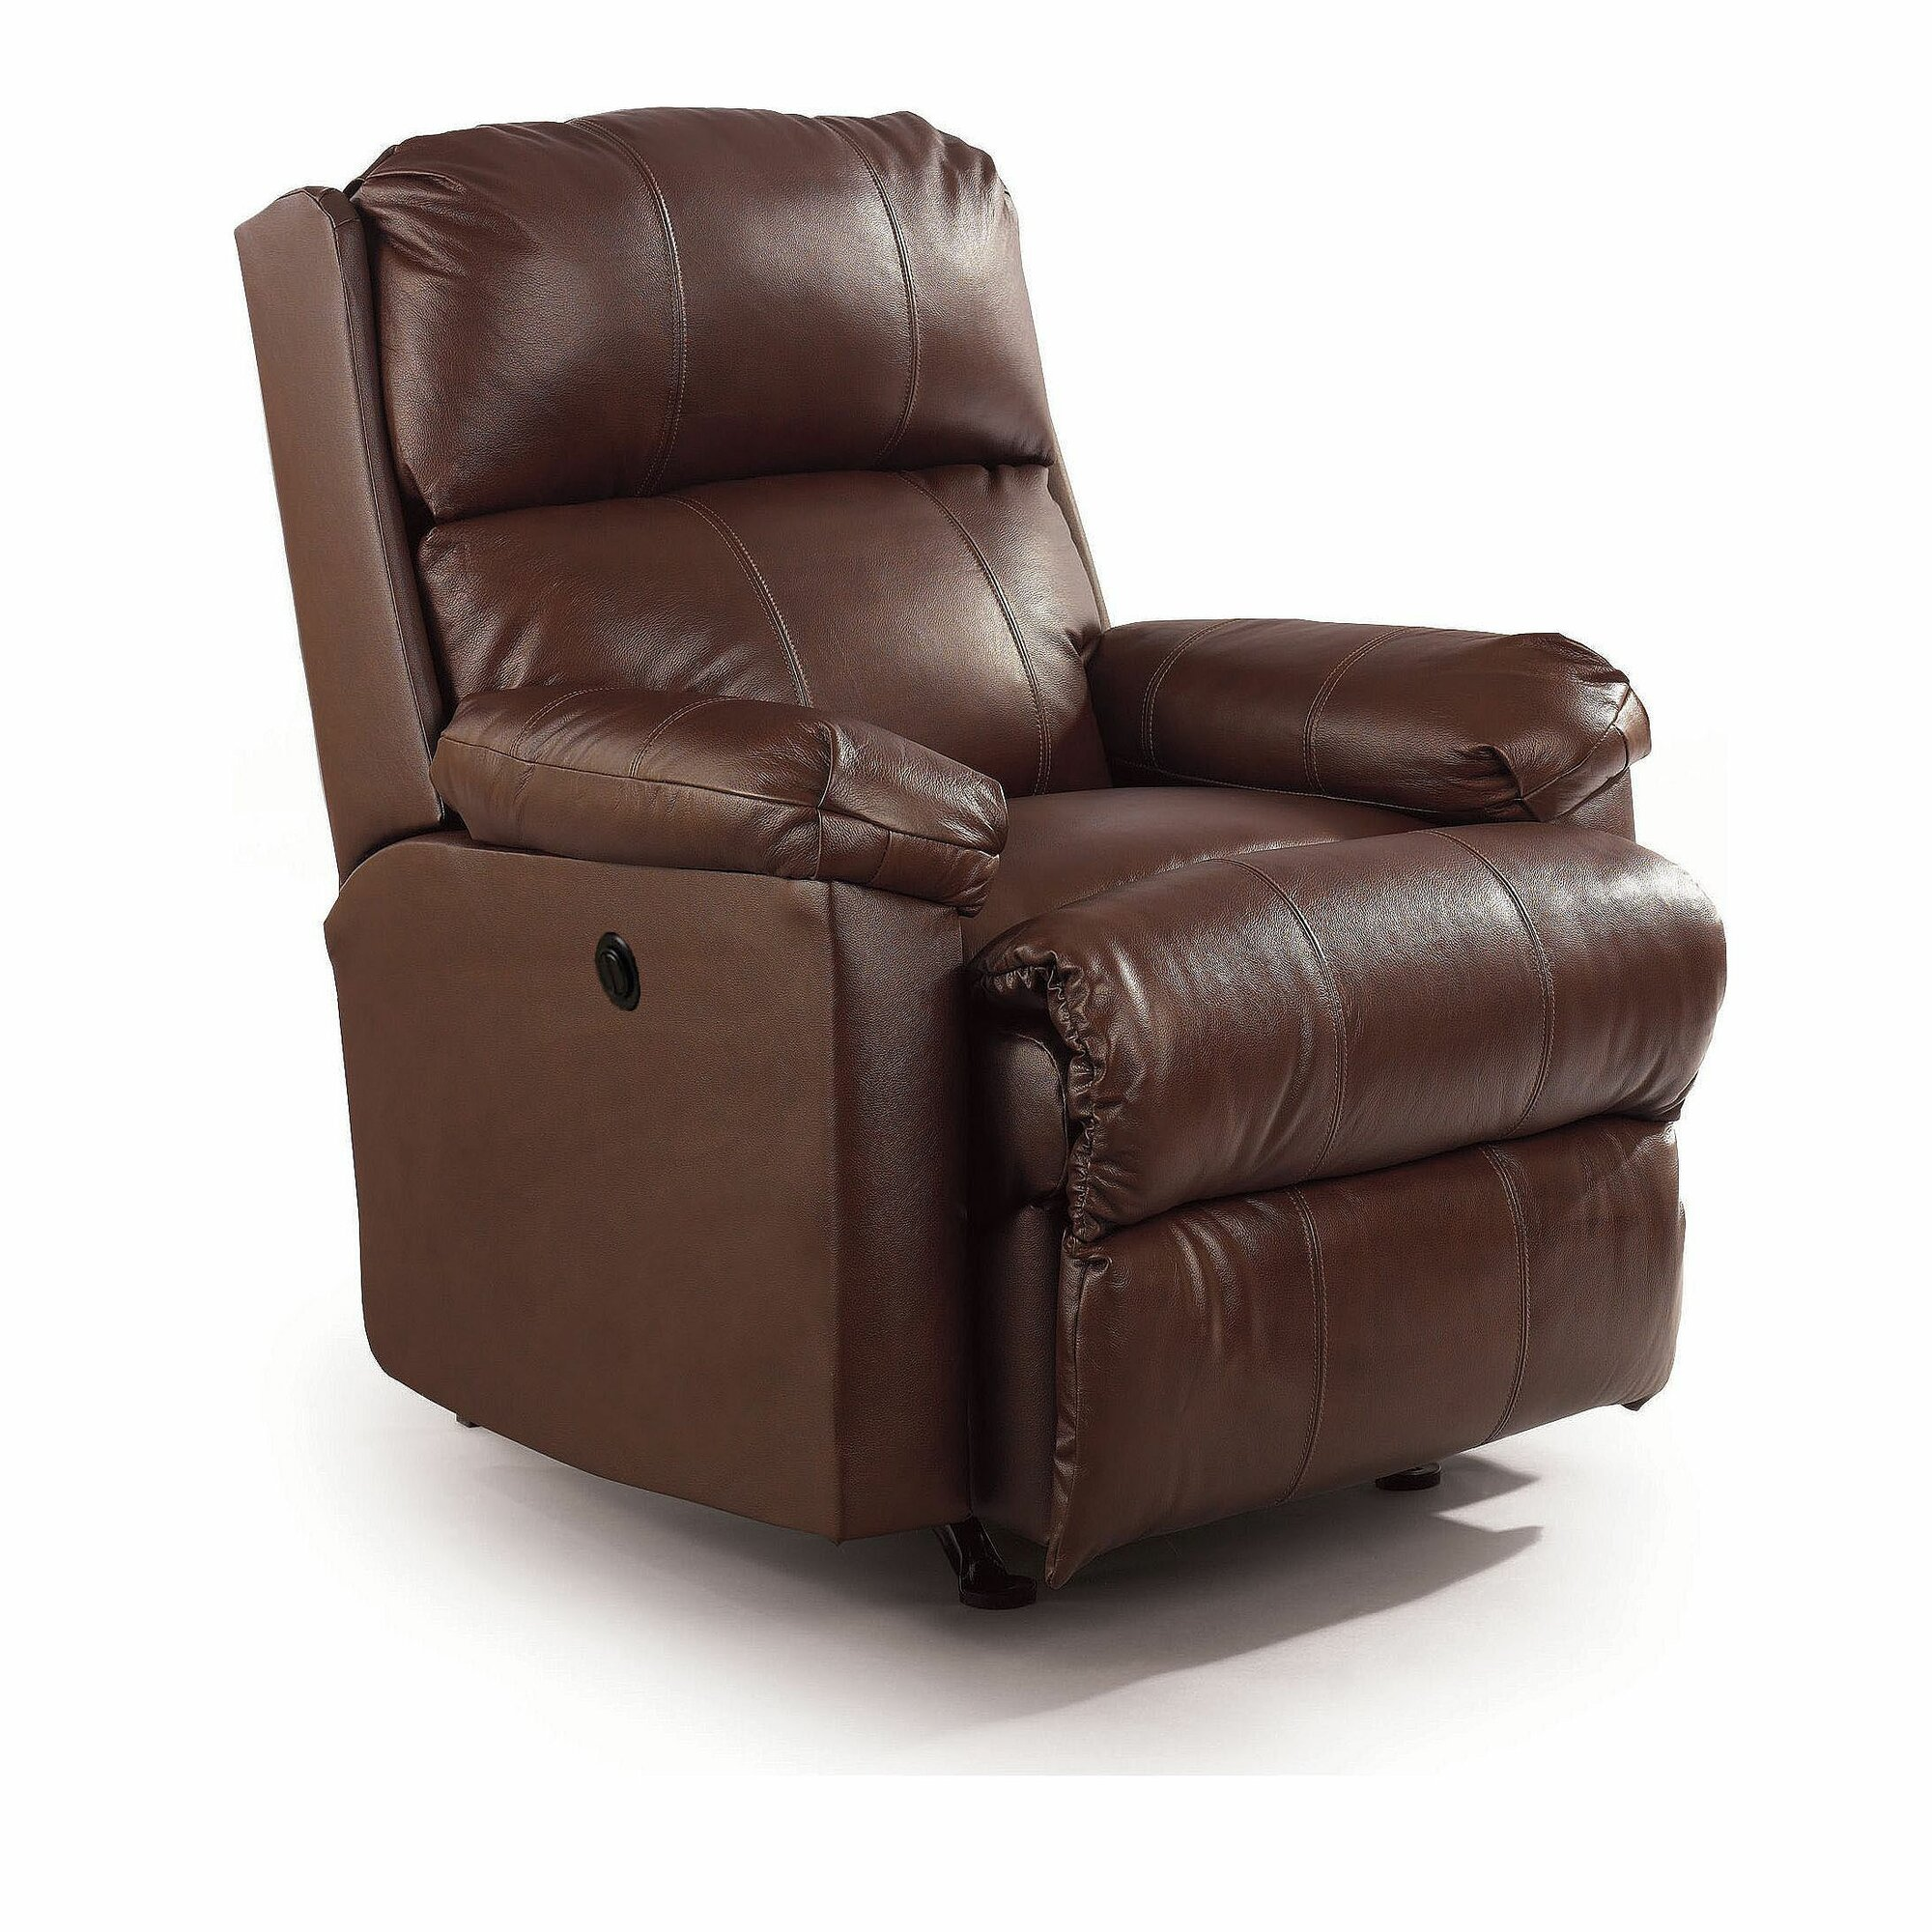 Lane furniture timeless recliner ebay for Lane furniture